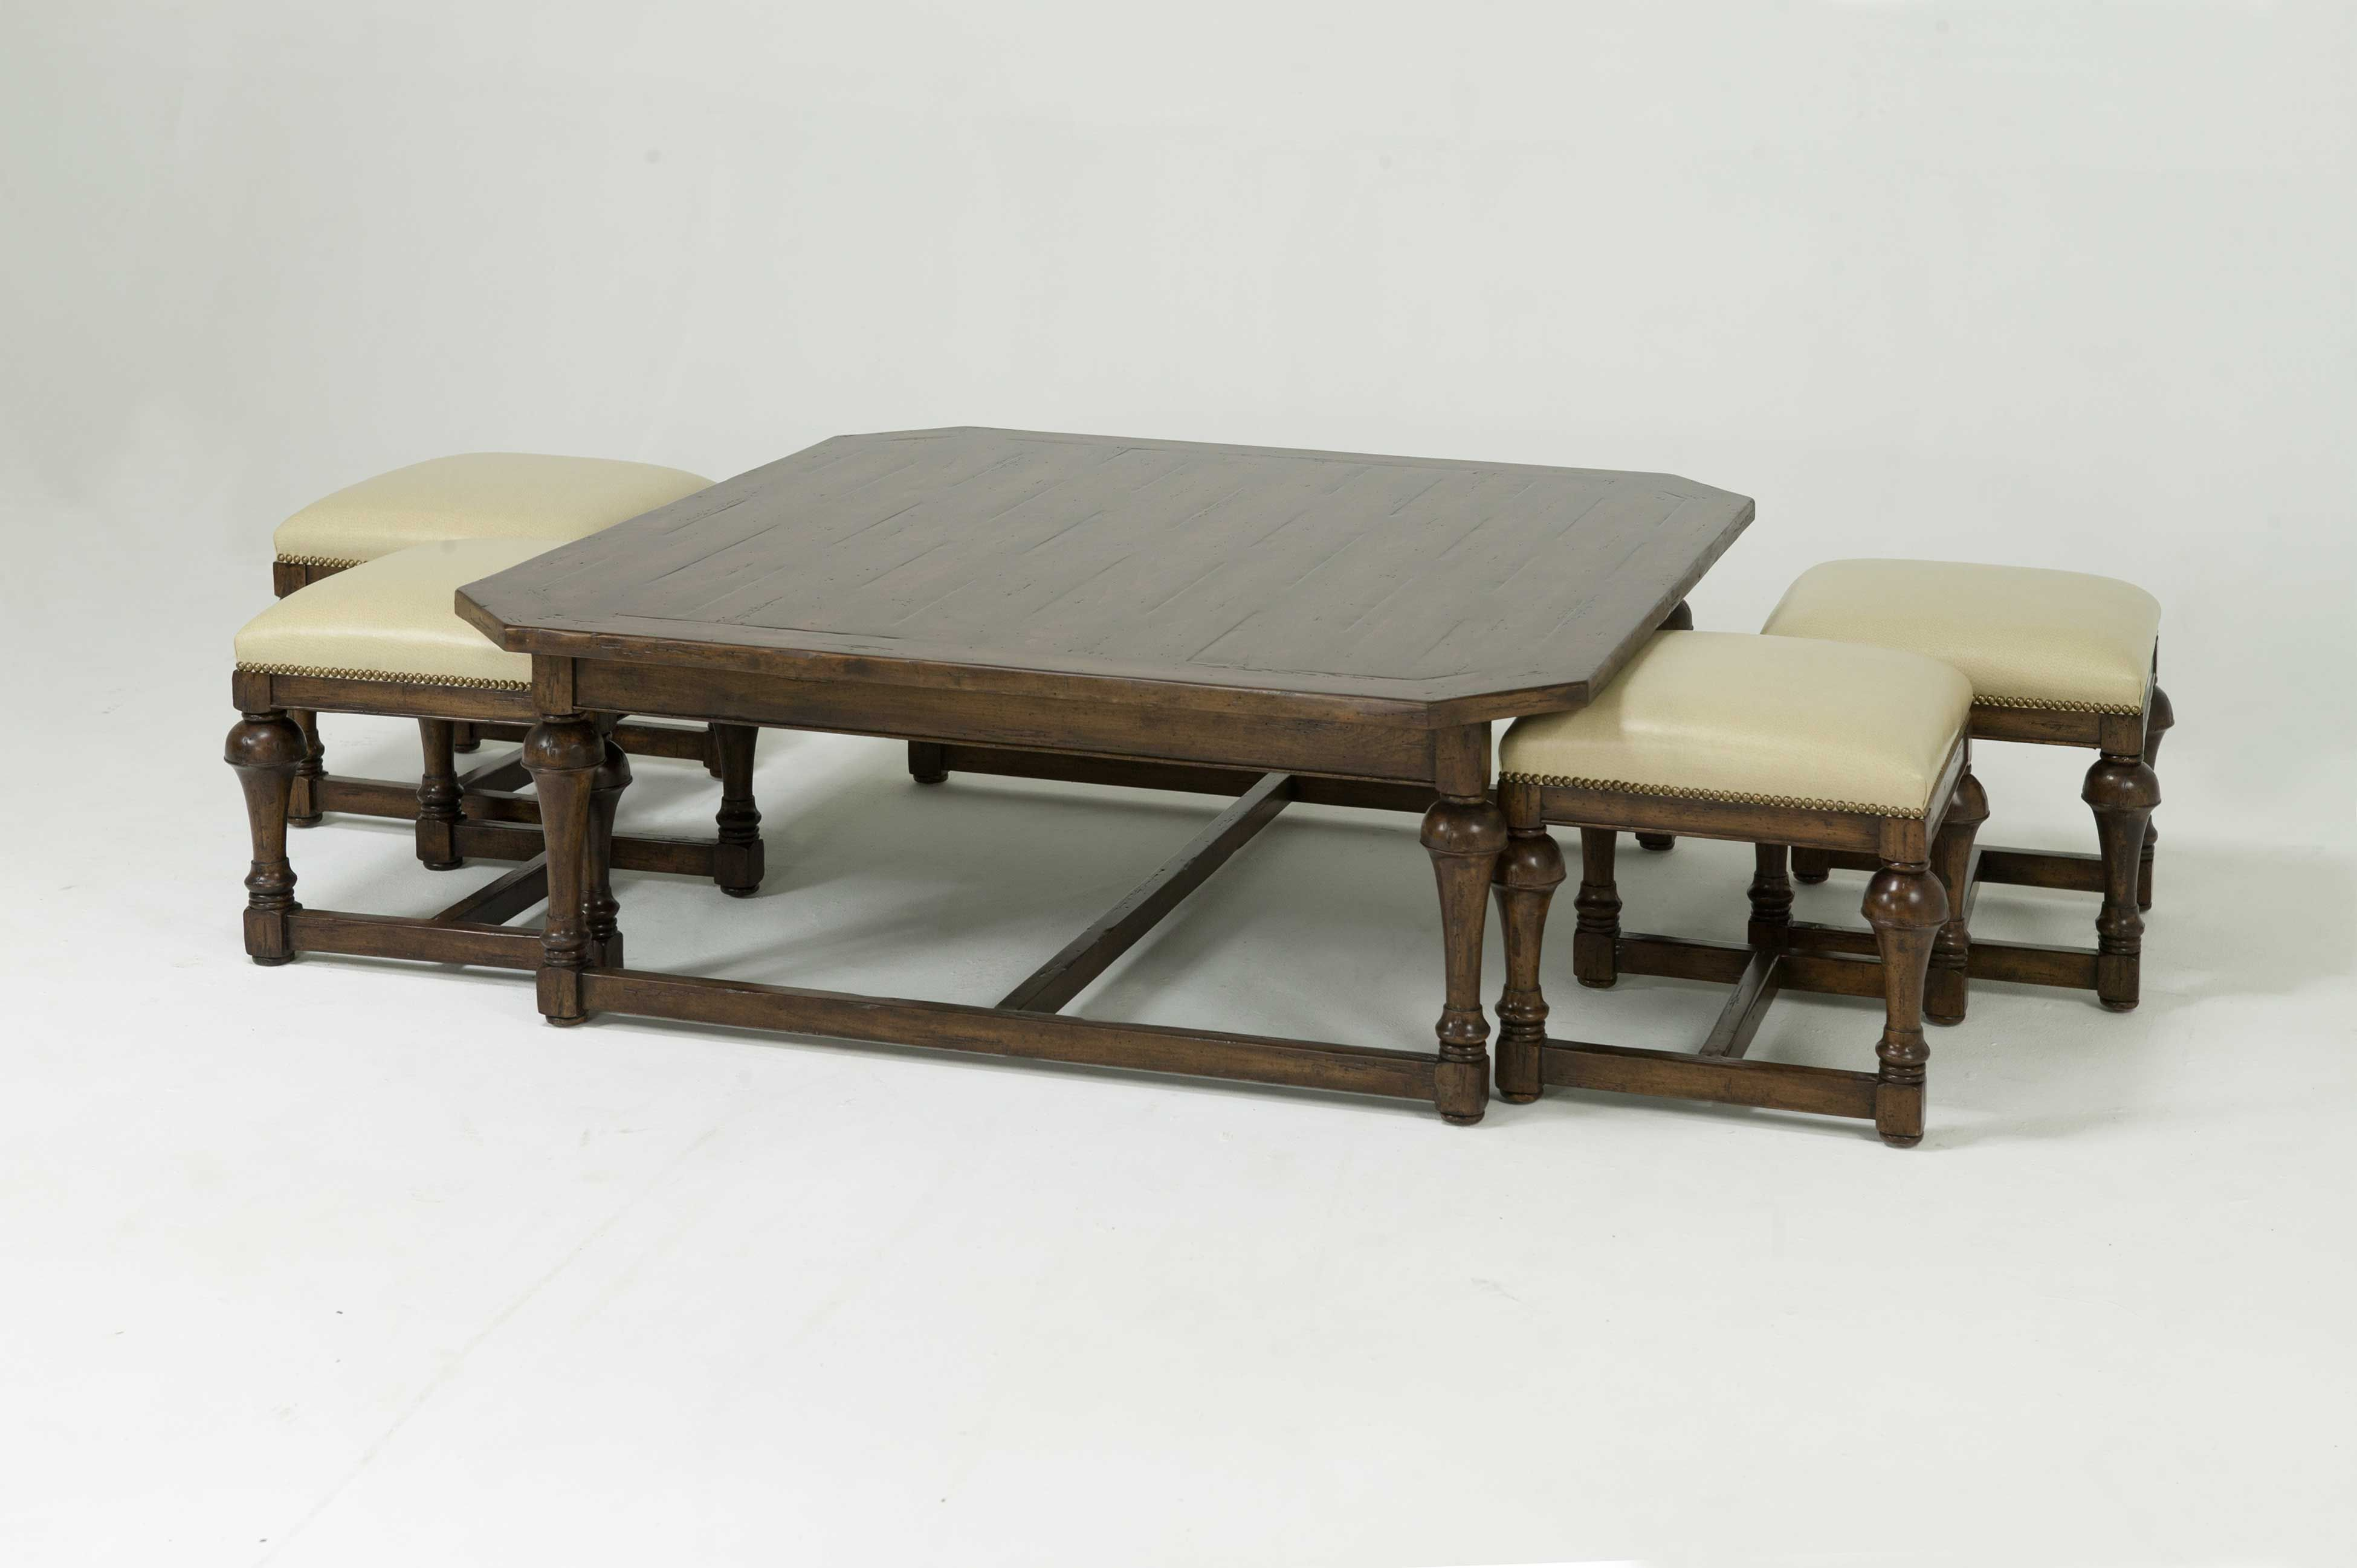 how to make an upholstered ottoman coffee table | Minimalist Home ...